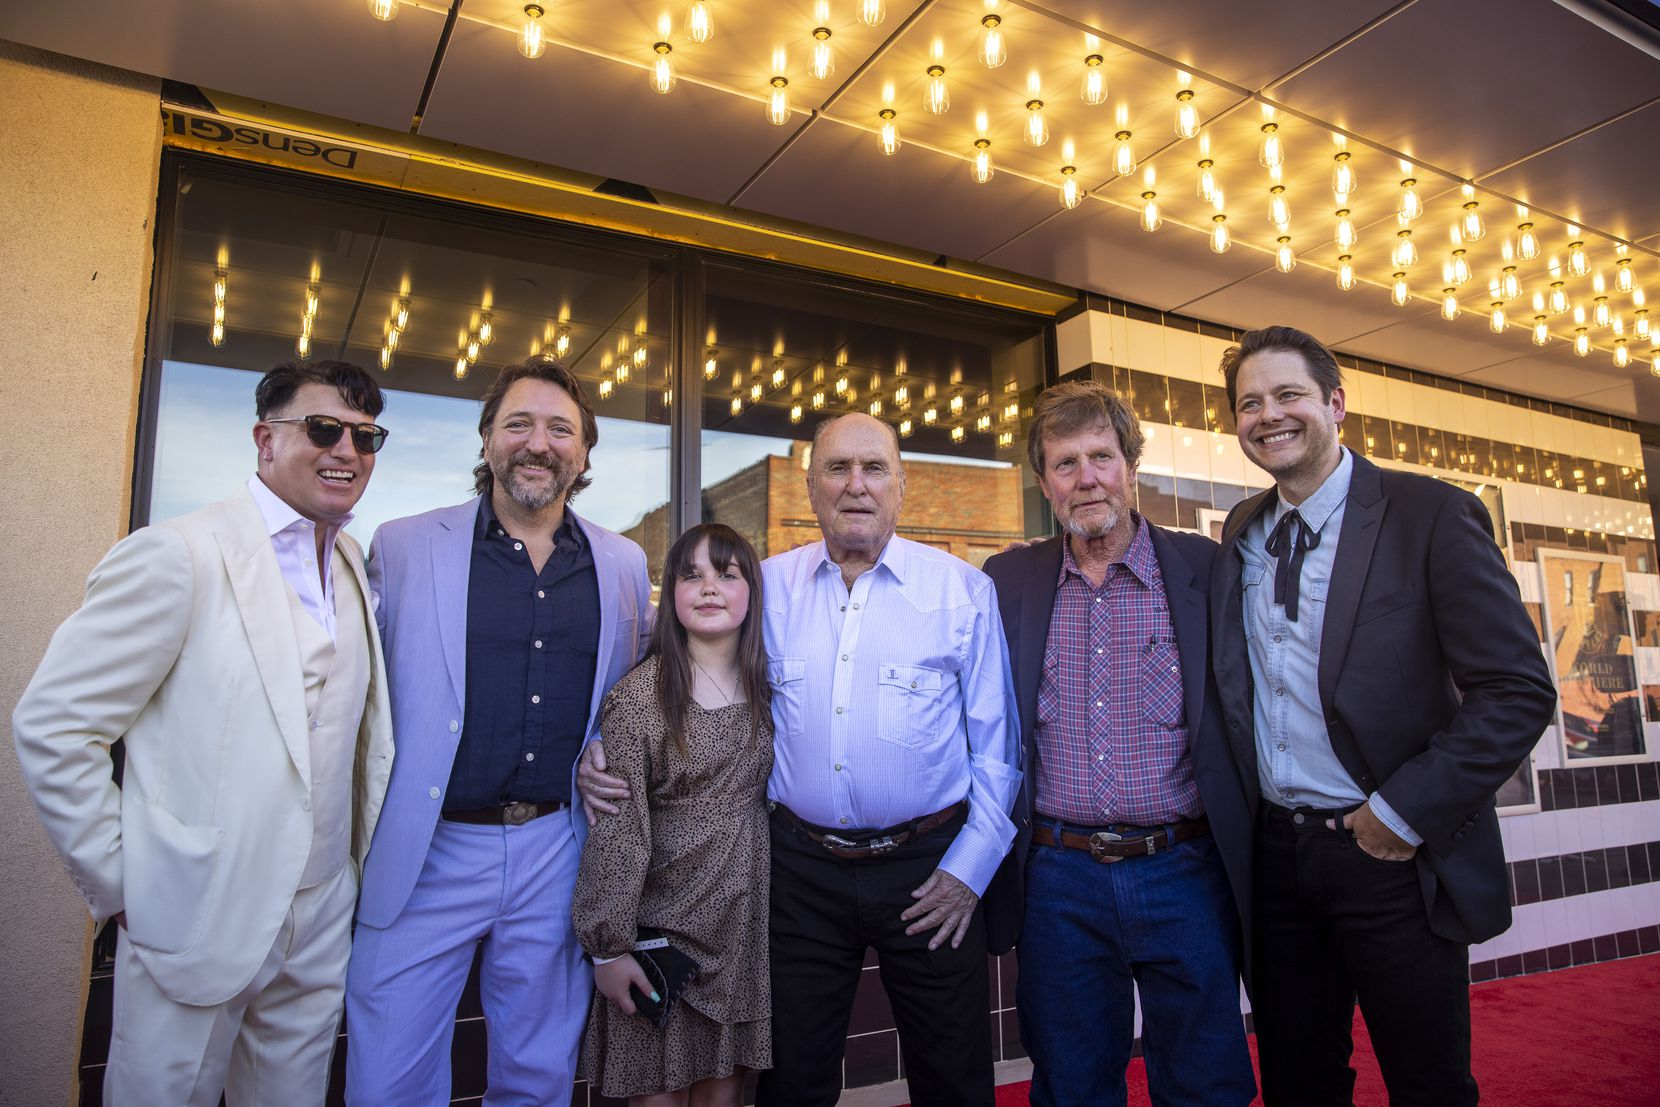 """From left: Co-producer and actor Lane Garrison, director Ty Roberts, Margarita Olympia McConaughey, actors Robert Duvall and Mike """"Rooster"""" McConaughey, and producer Houston Hill attend the premiere of """"12 Mighty Orphans"""" held at the ISIS Theater in Fort Worth on Monday."""